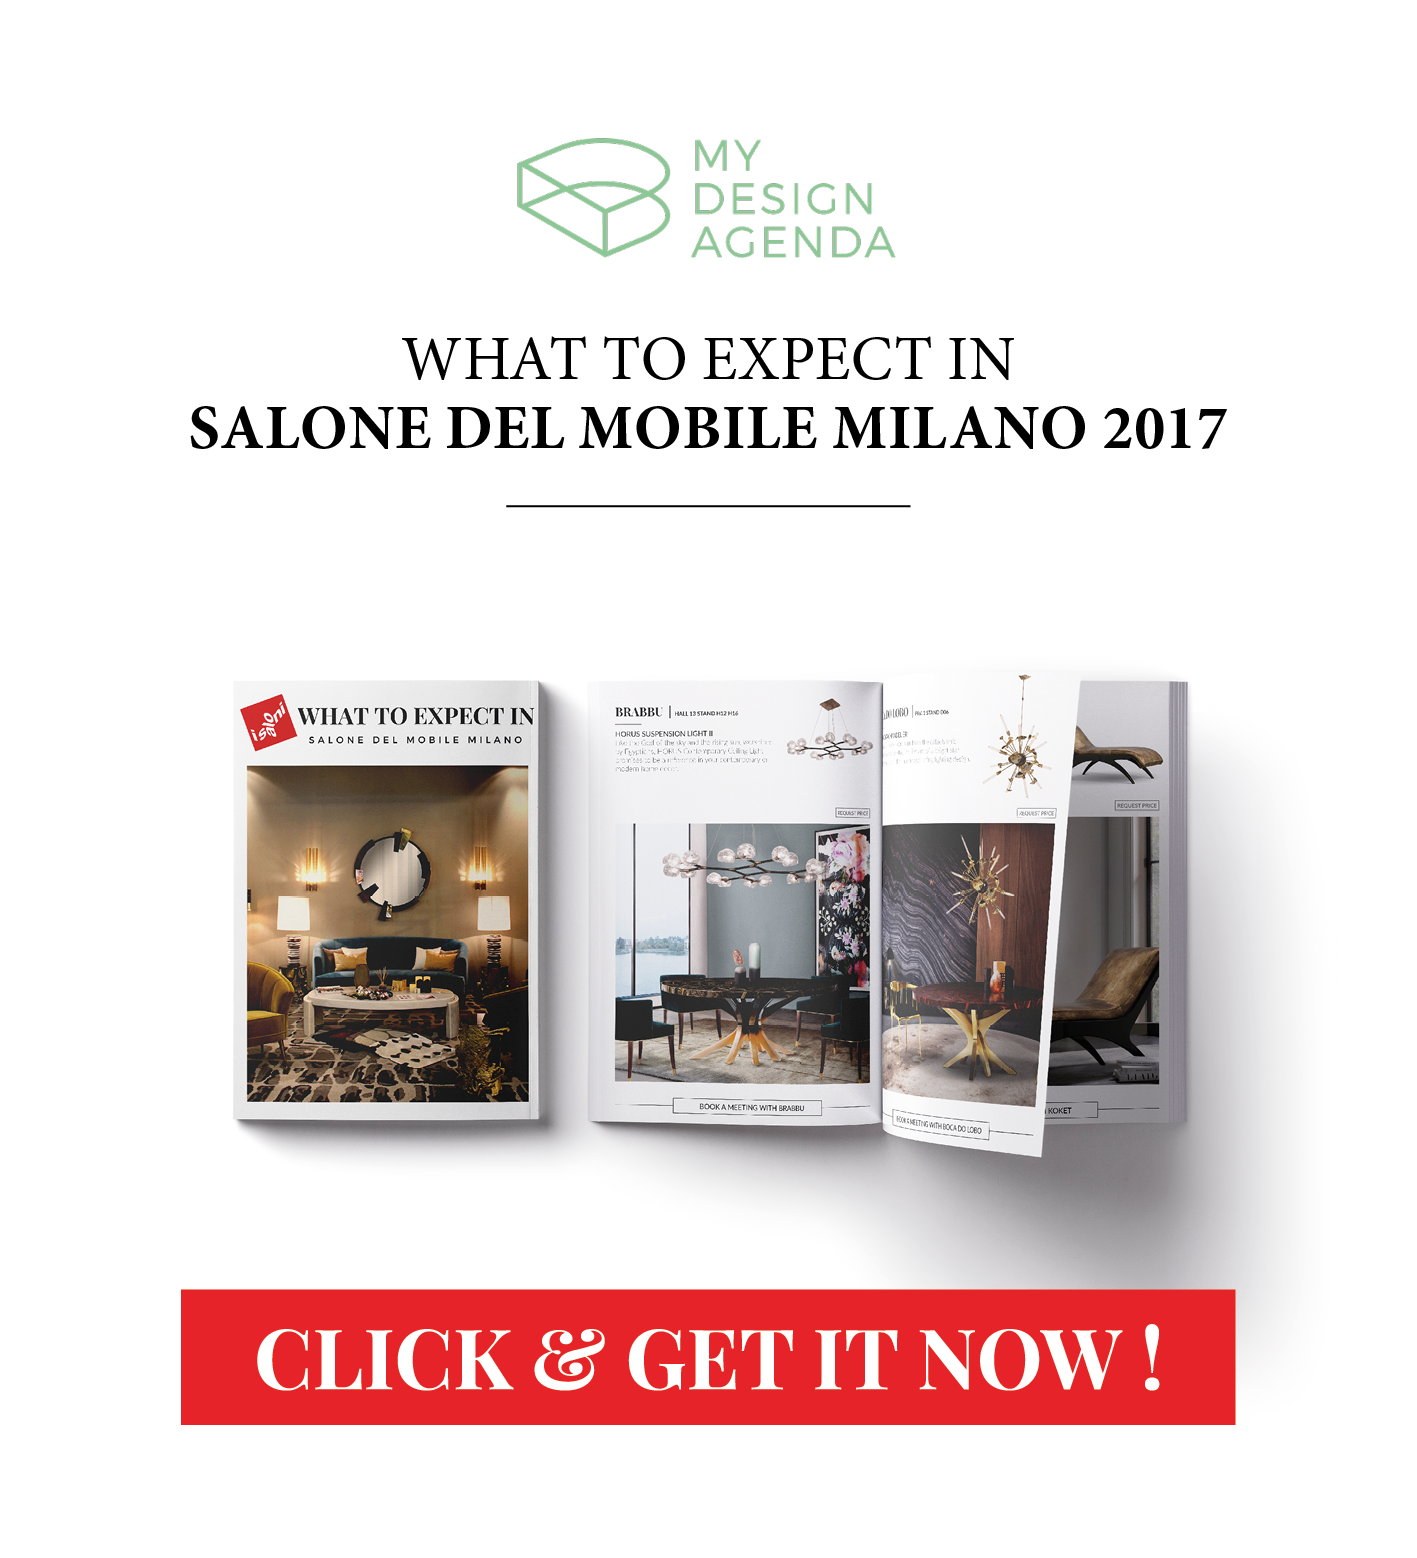 The best of salone del mobile milano 2017 for Salone del mobile milano biglietti omaggio